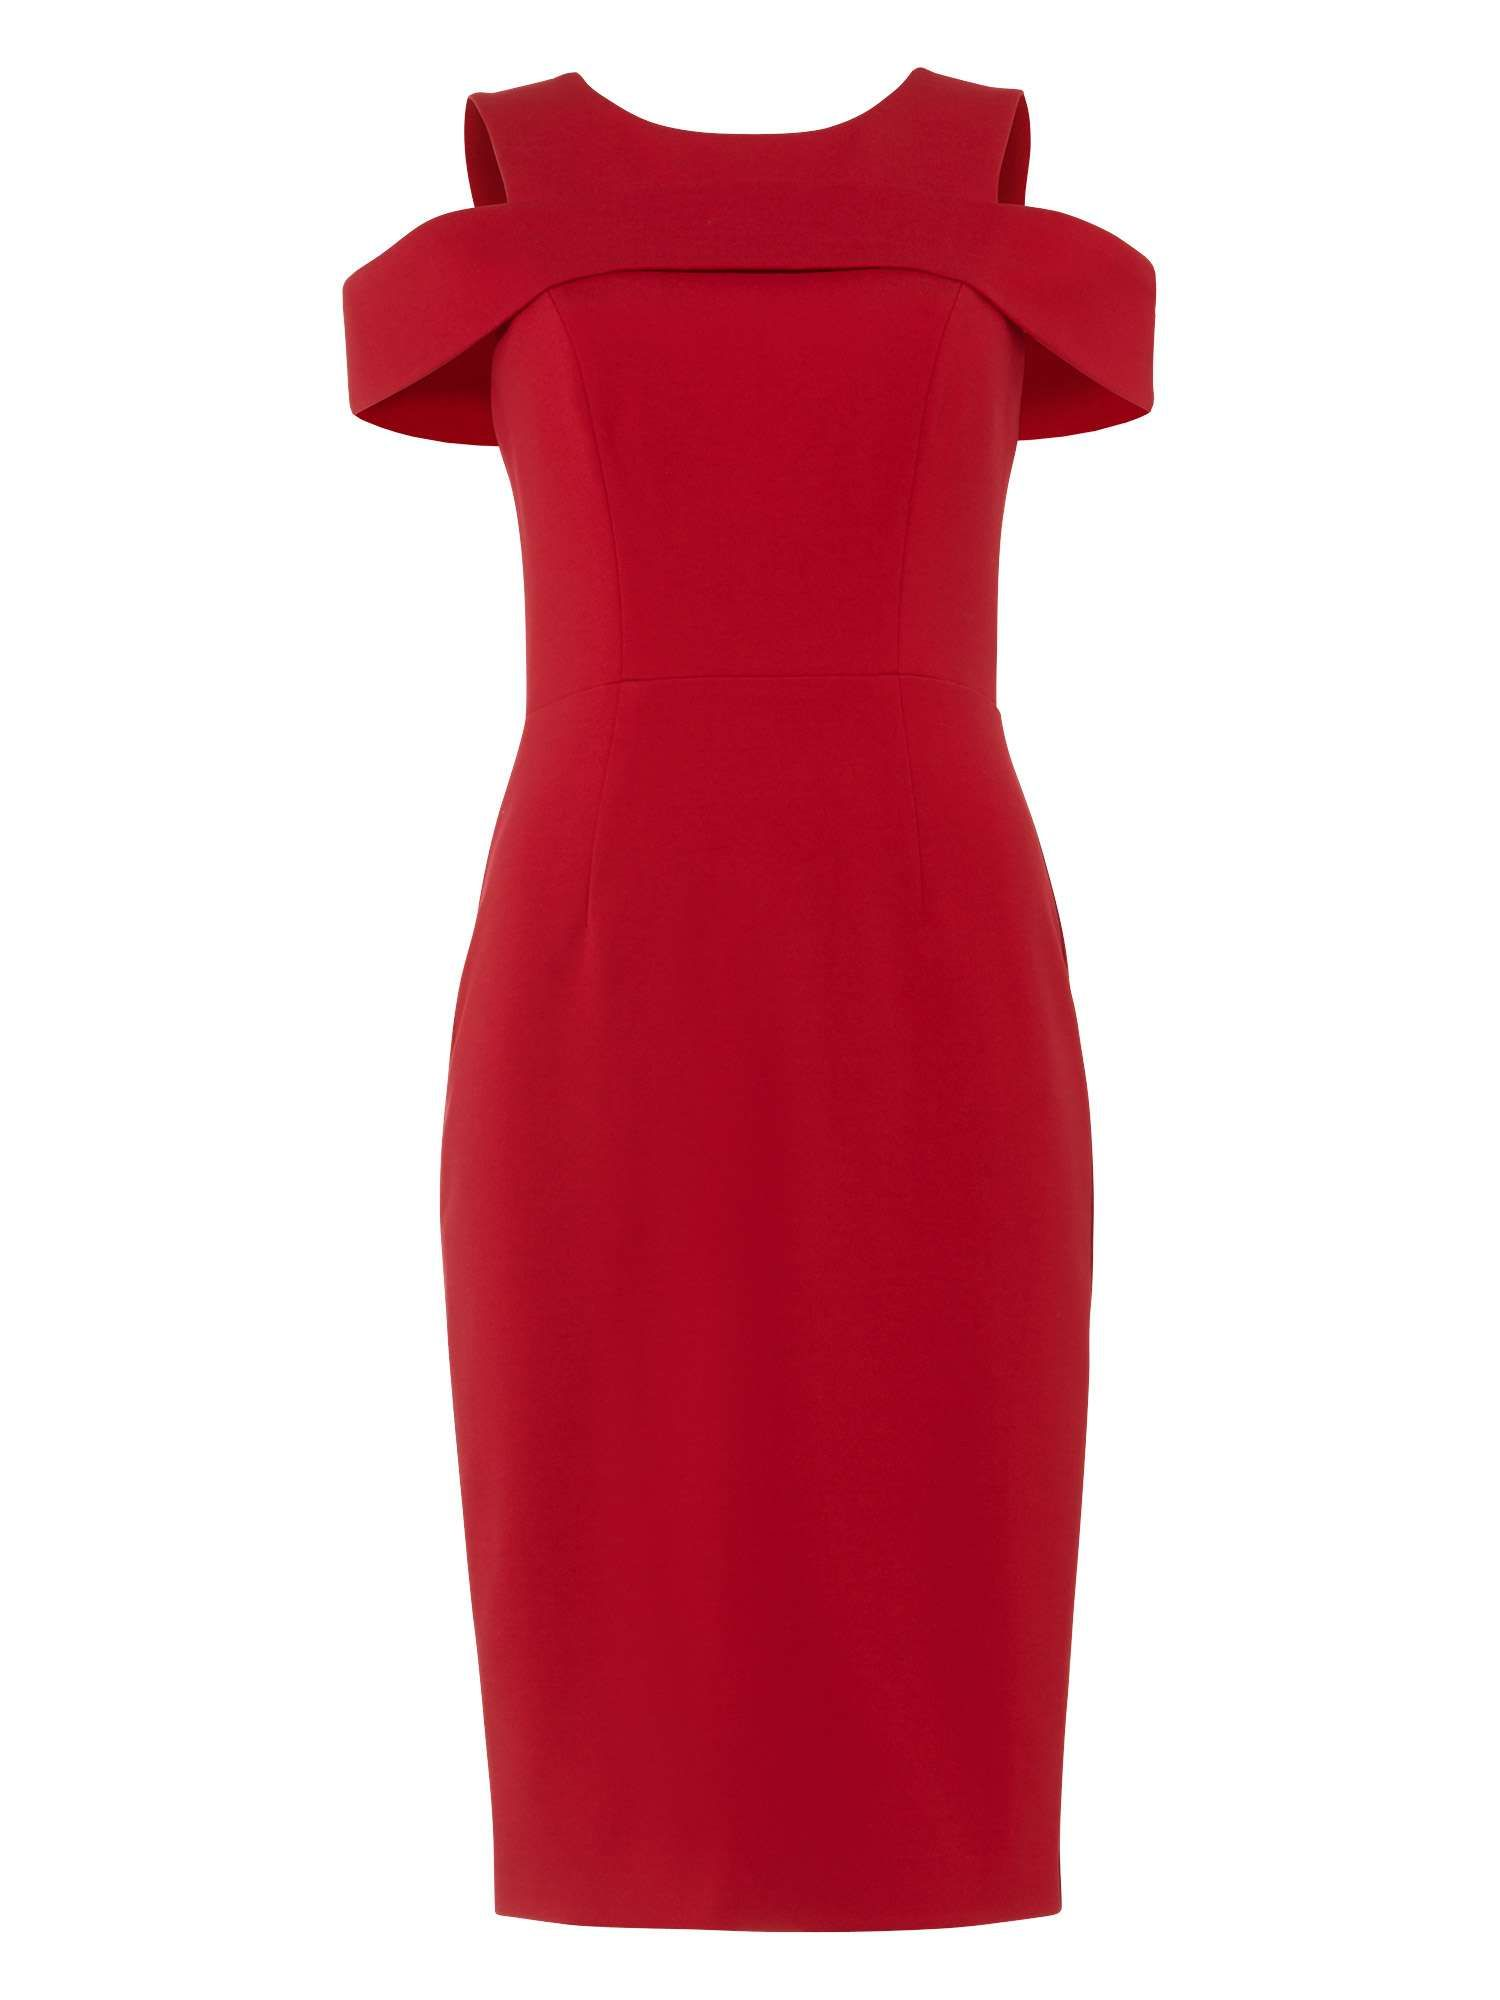 69eb0d41a23 Buy your Phase Eight Martina Dress online now at House of Fraser. Why not  Buy and Collect in-store